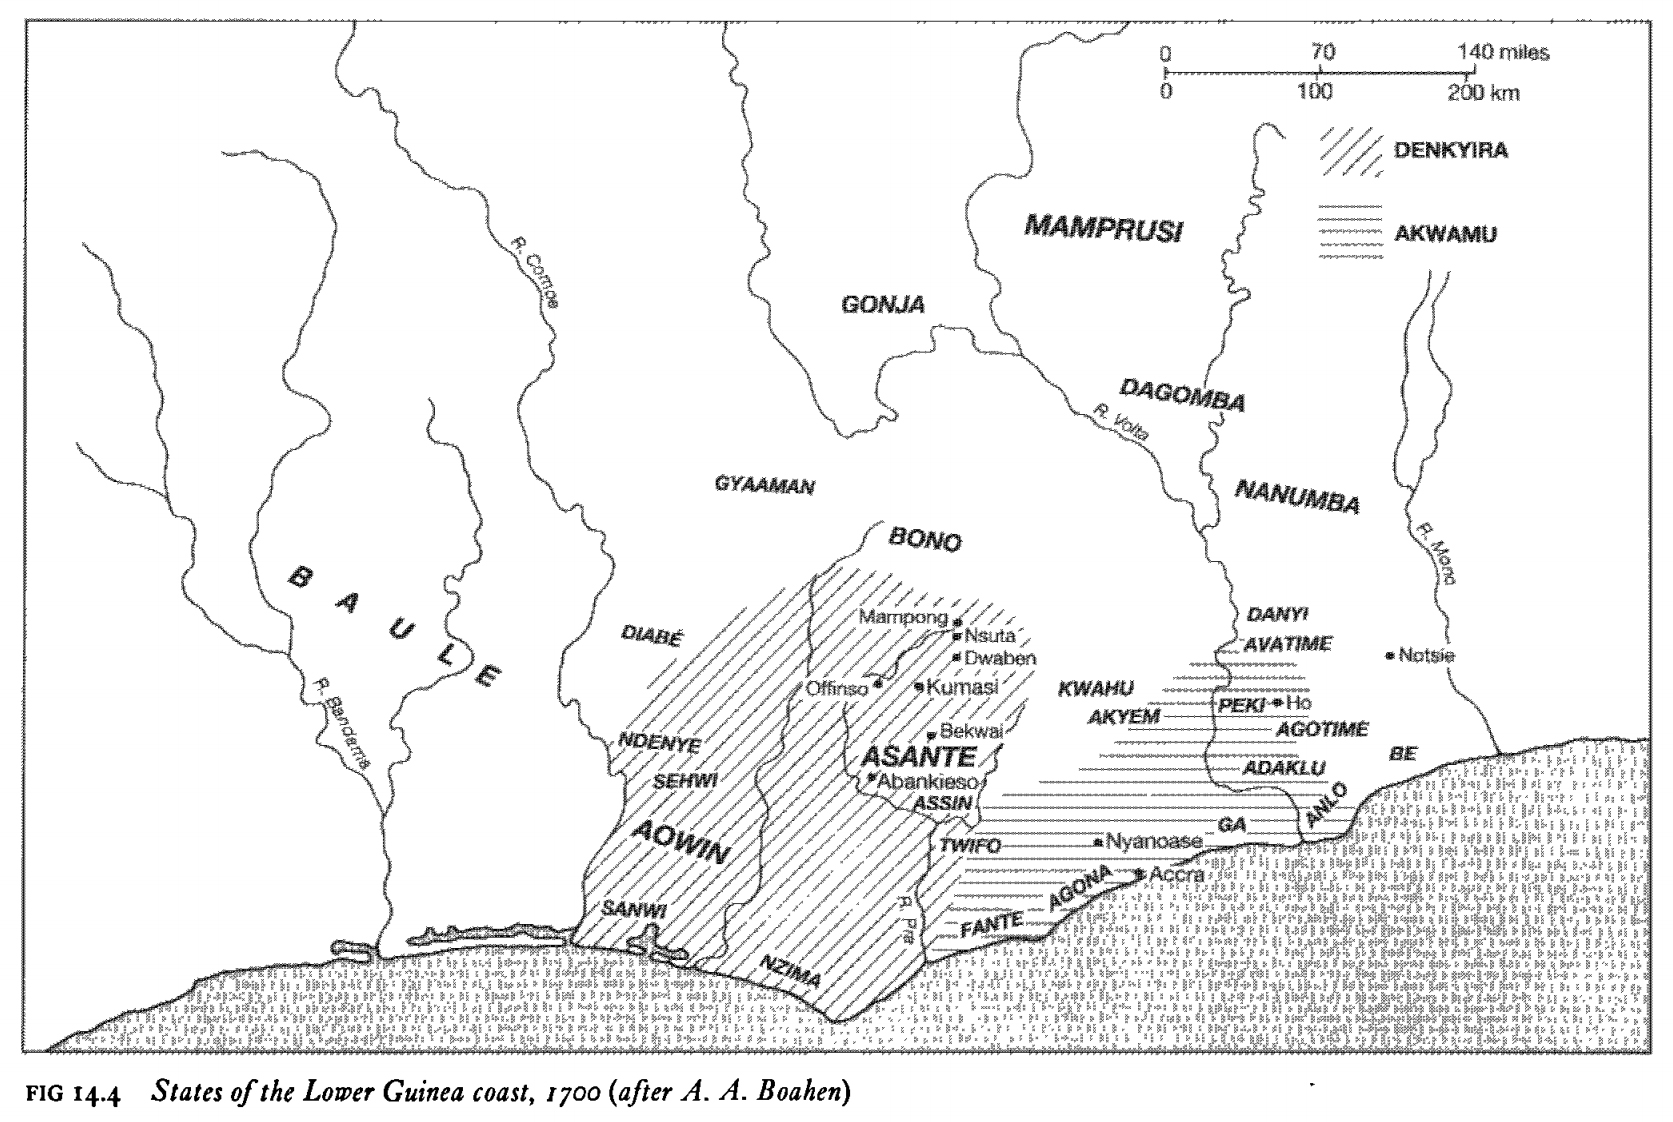 Map showing the Akan states in the 18th century (present-day Ghana).